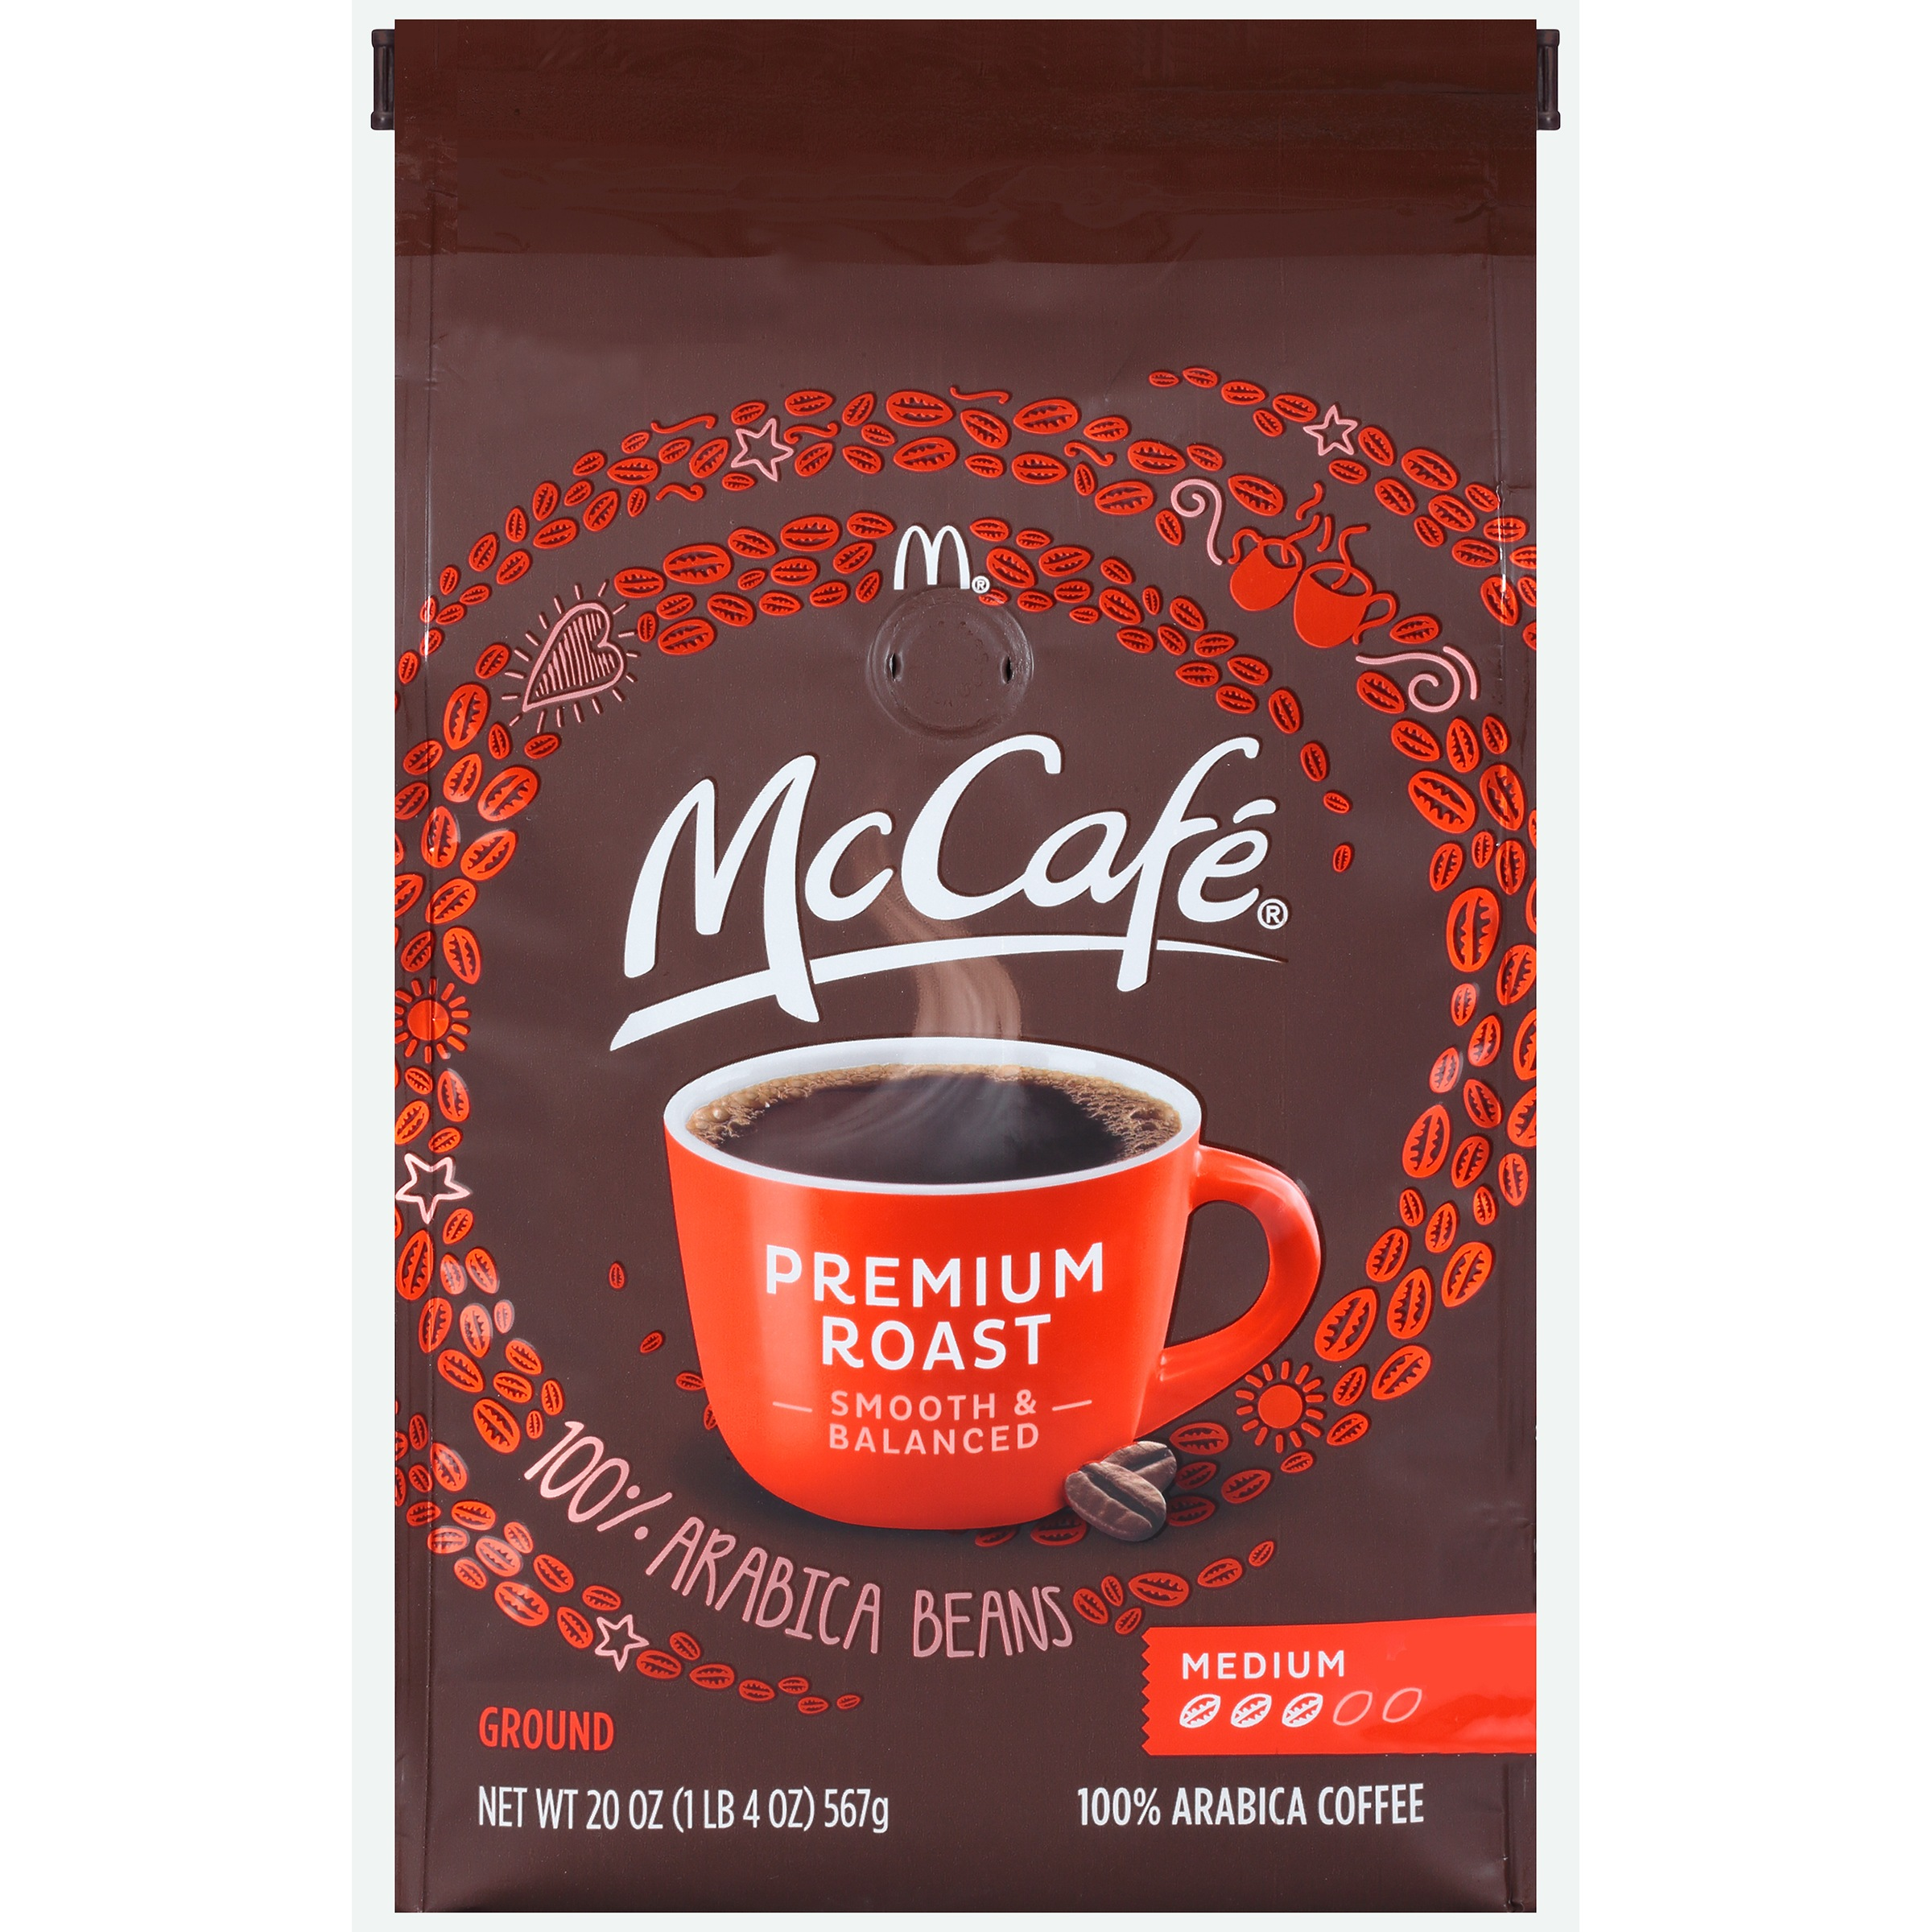 McCafe Premium Roast Ground Coffee 20 oz. Bag